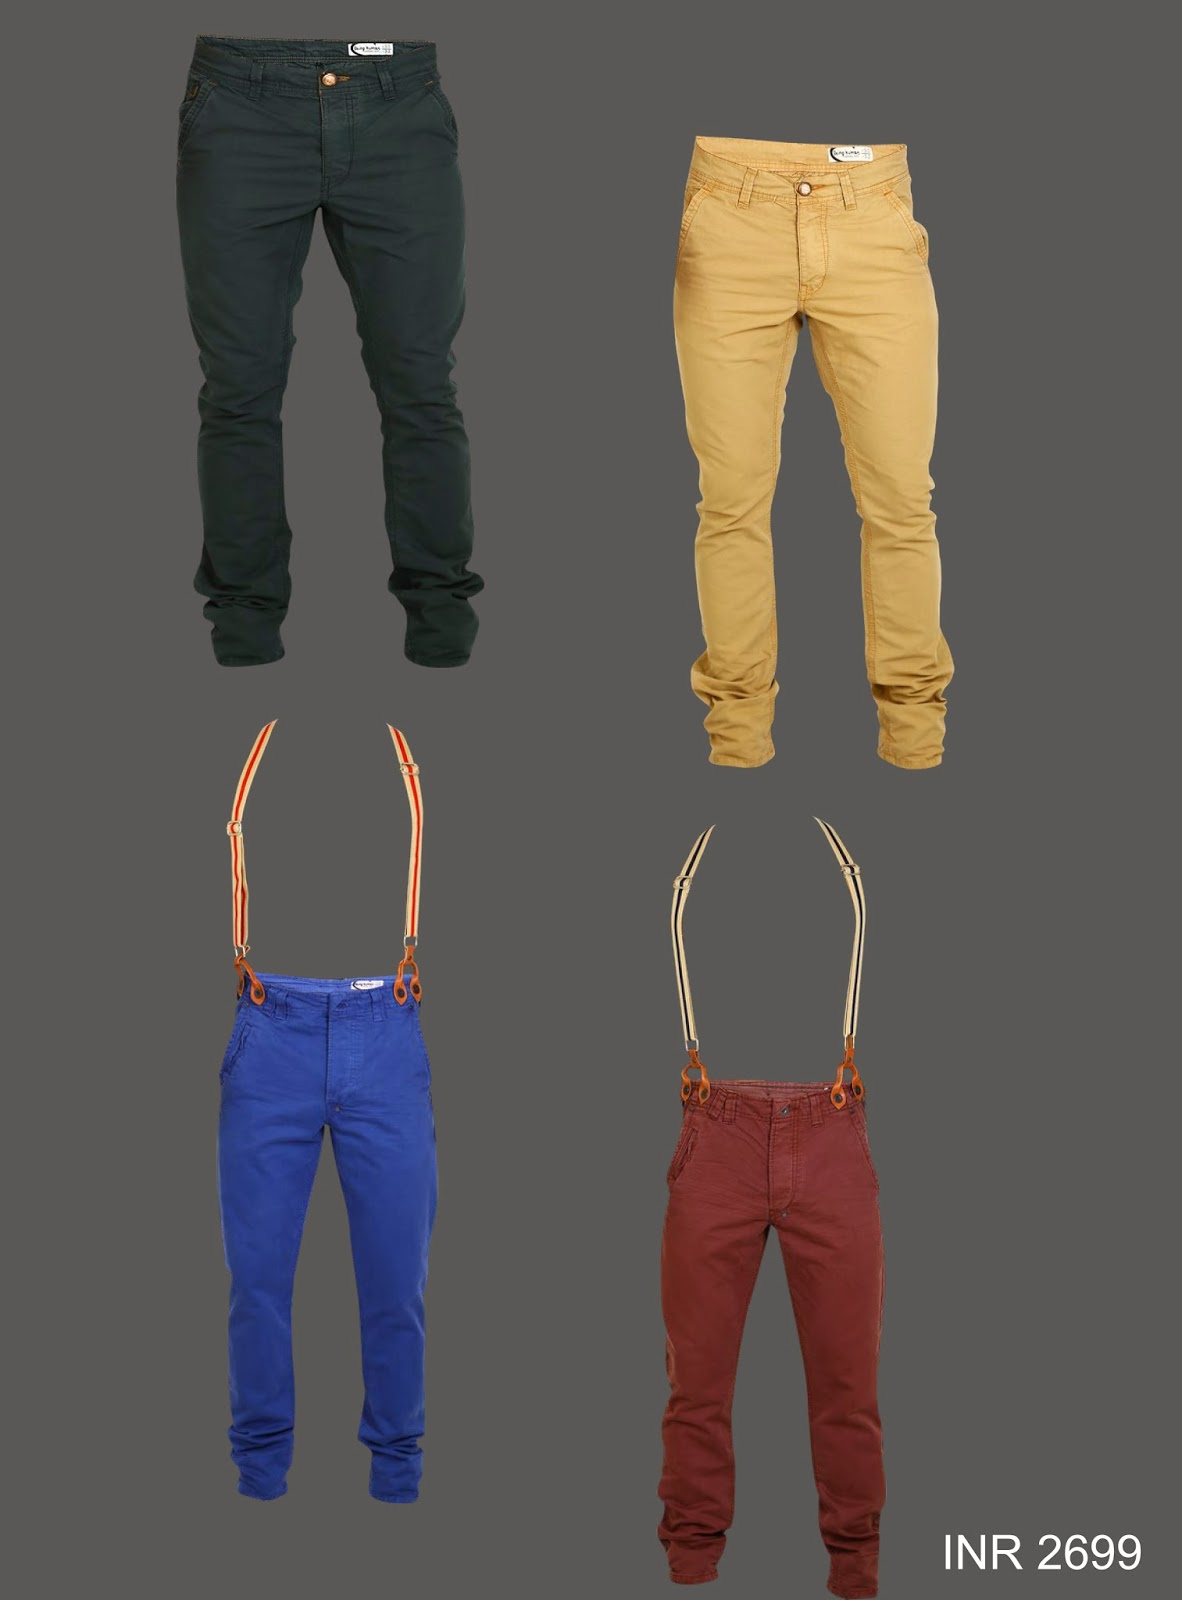 Pants get a stylish twist with some cool suspenders.